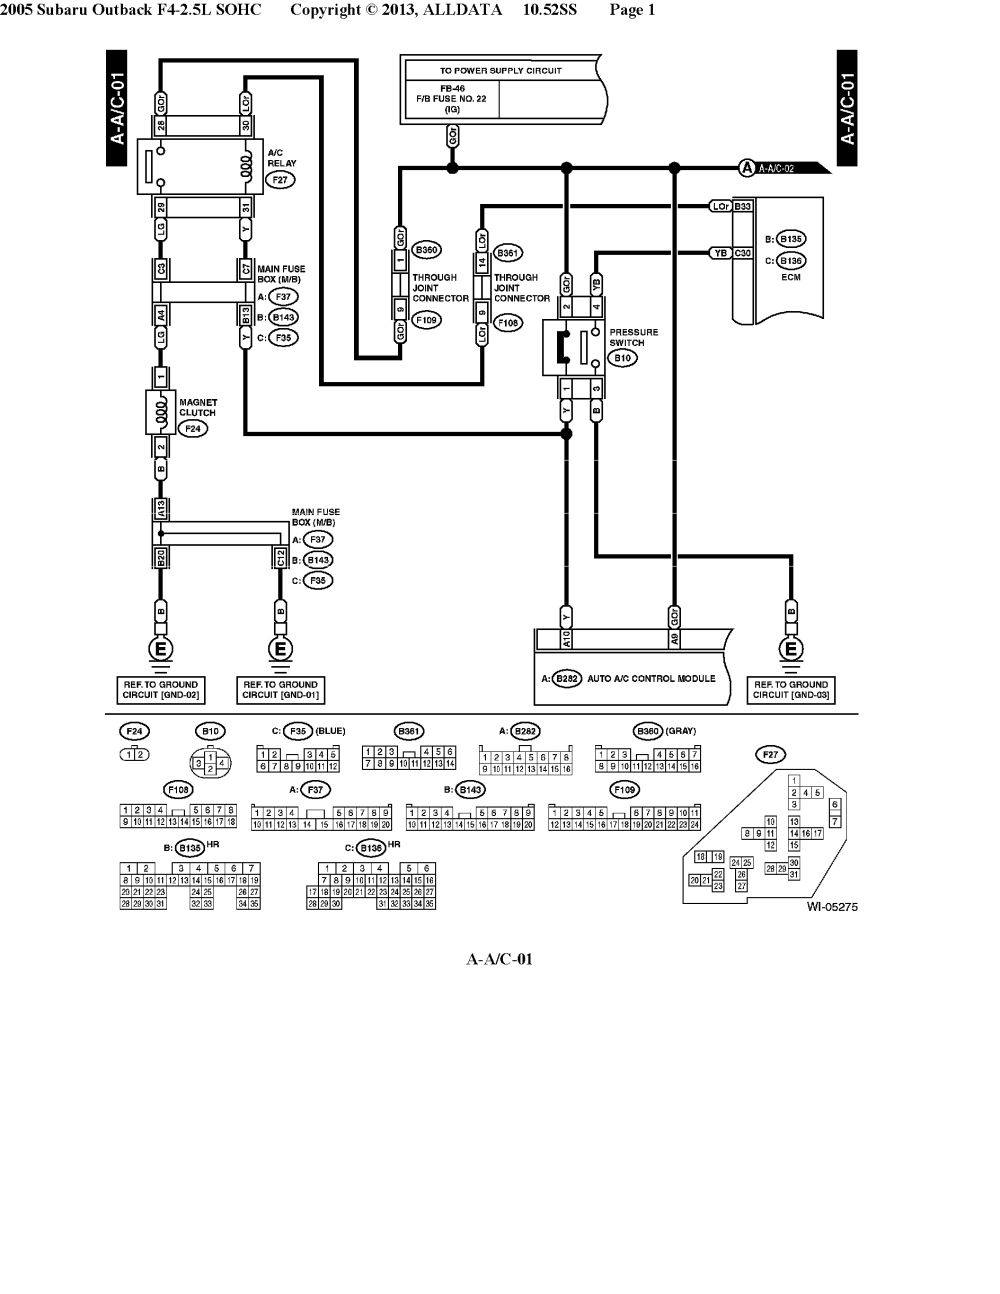 medium resolution of electrical wiring diagrams 2003 subara outback ll bean my wiring mix 05 u0027 h6 a c